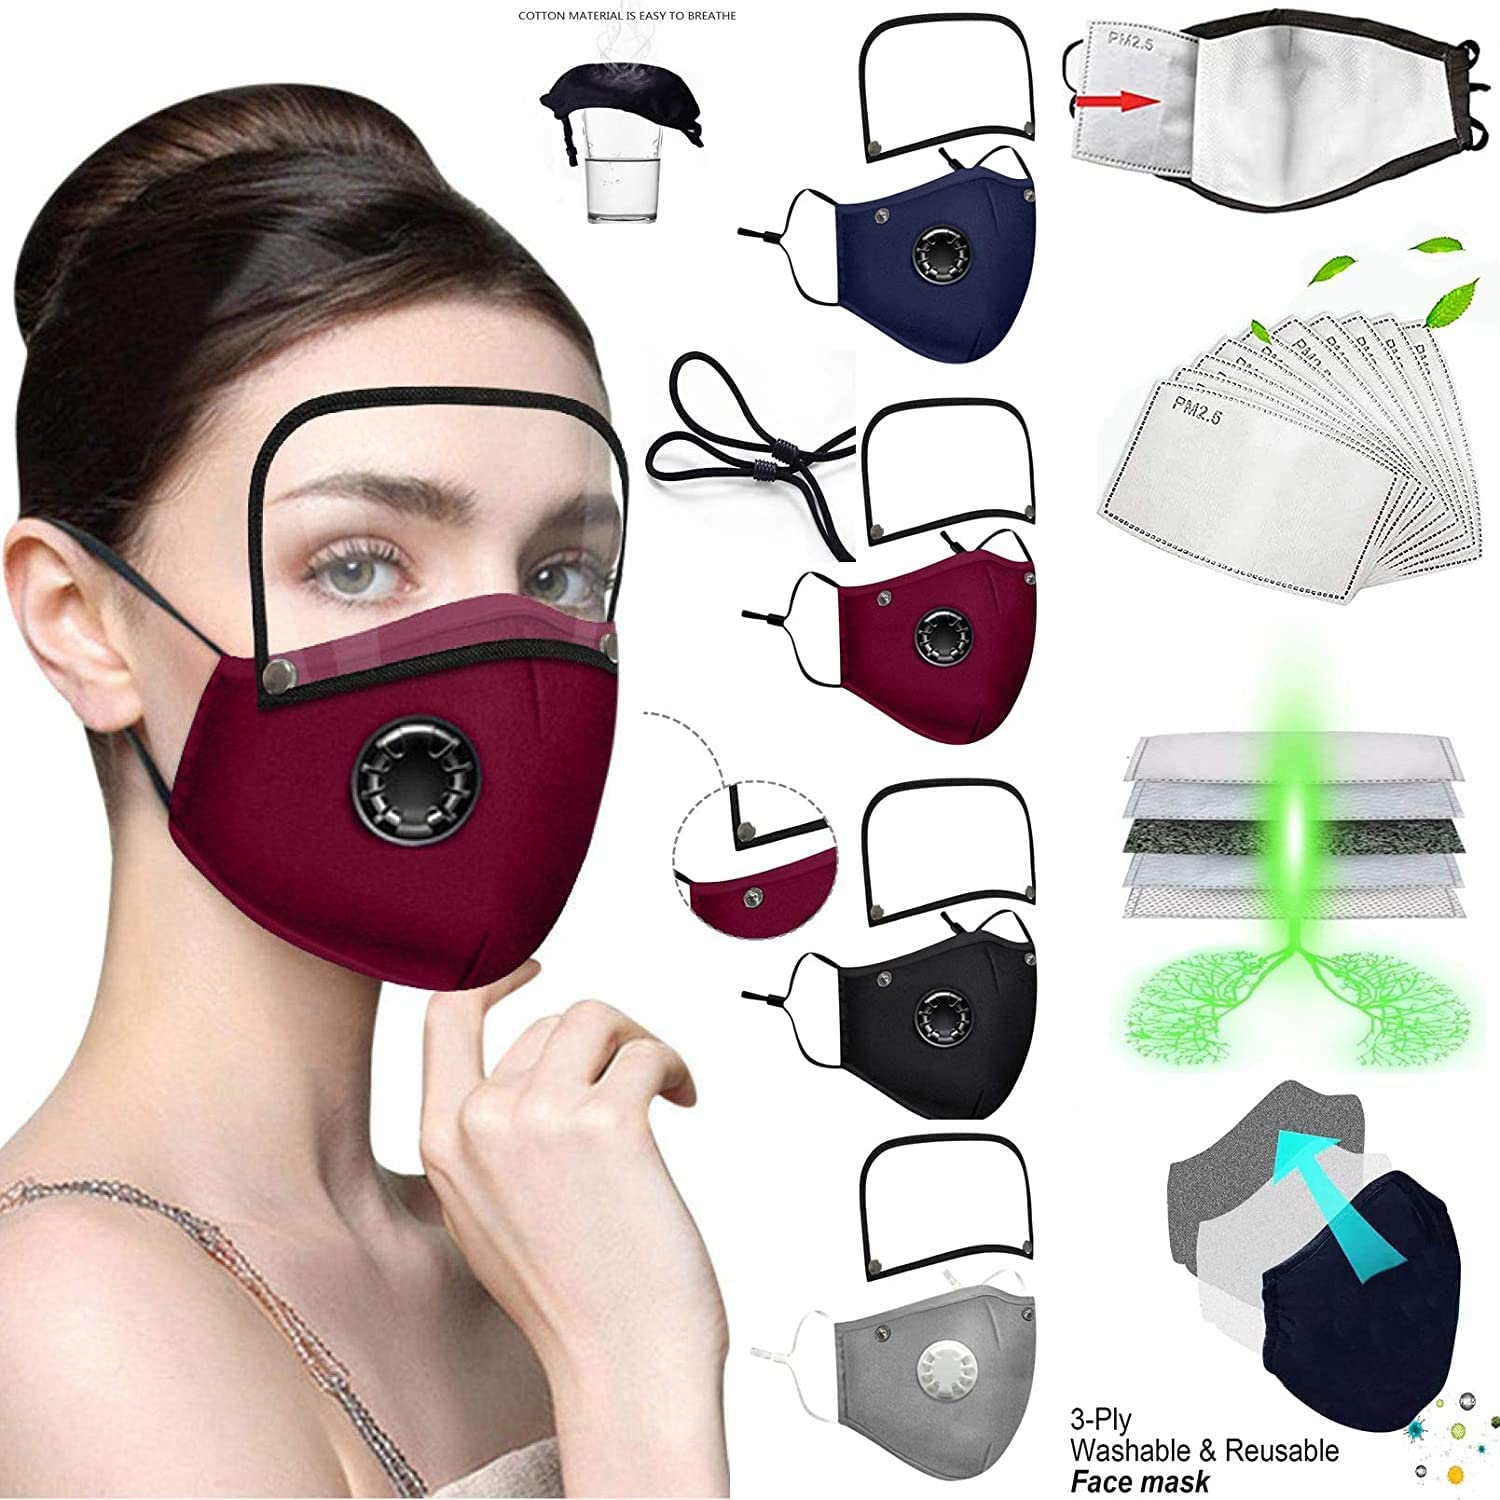 4Pcs Reusable Face Protection Shield with Breathing Valve with 8Pcs Activated Carbon Filter with Detachable Eyes Shield,Washable Breathable Cotton Fabric,Adiustable Face Bandanas for Adults